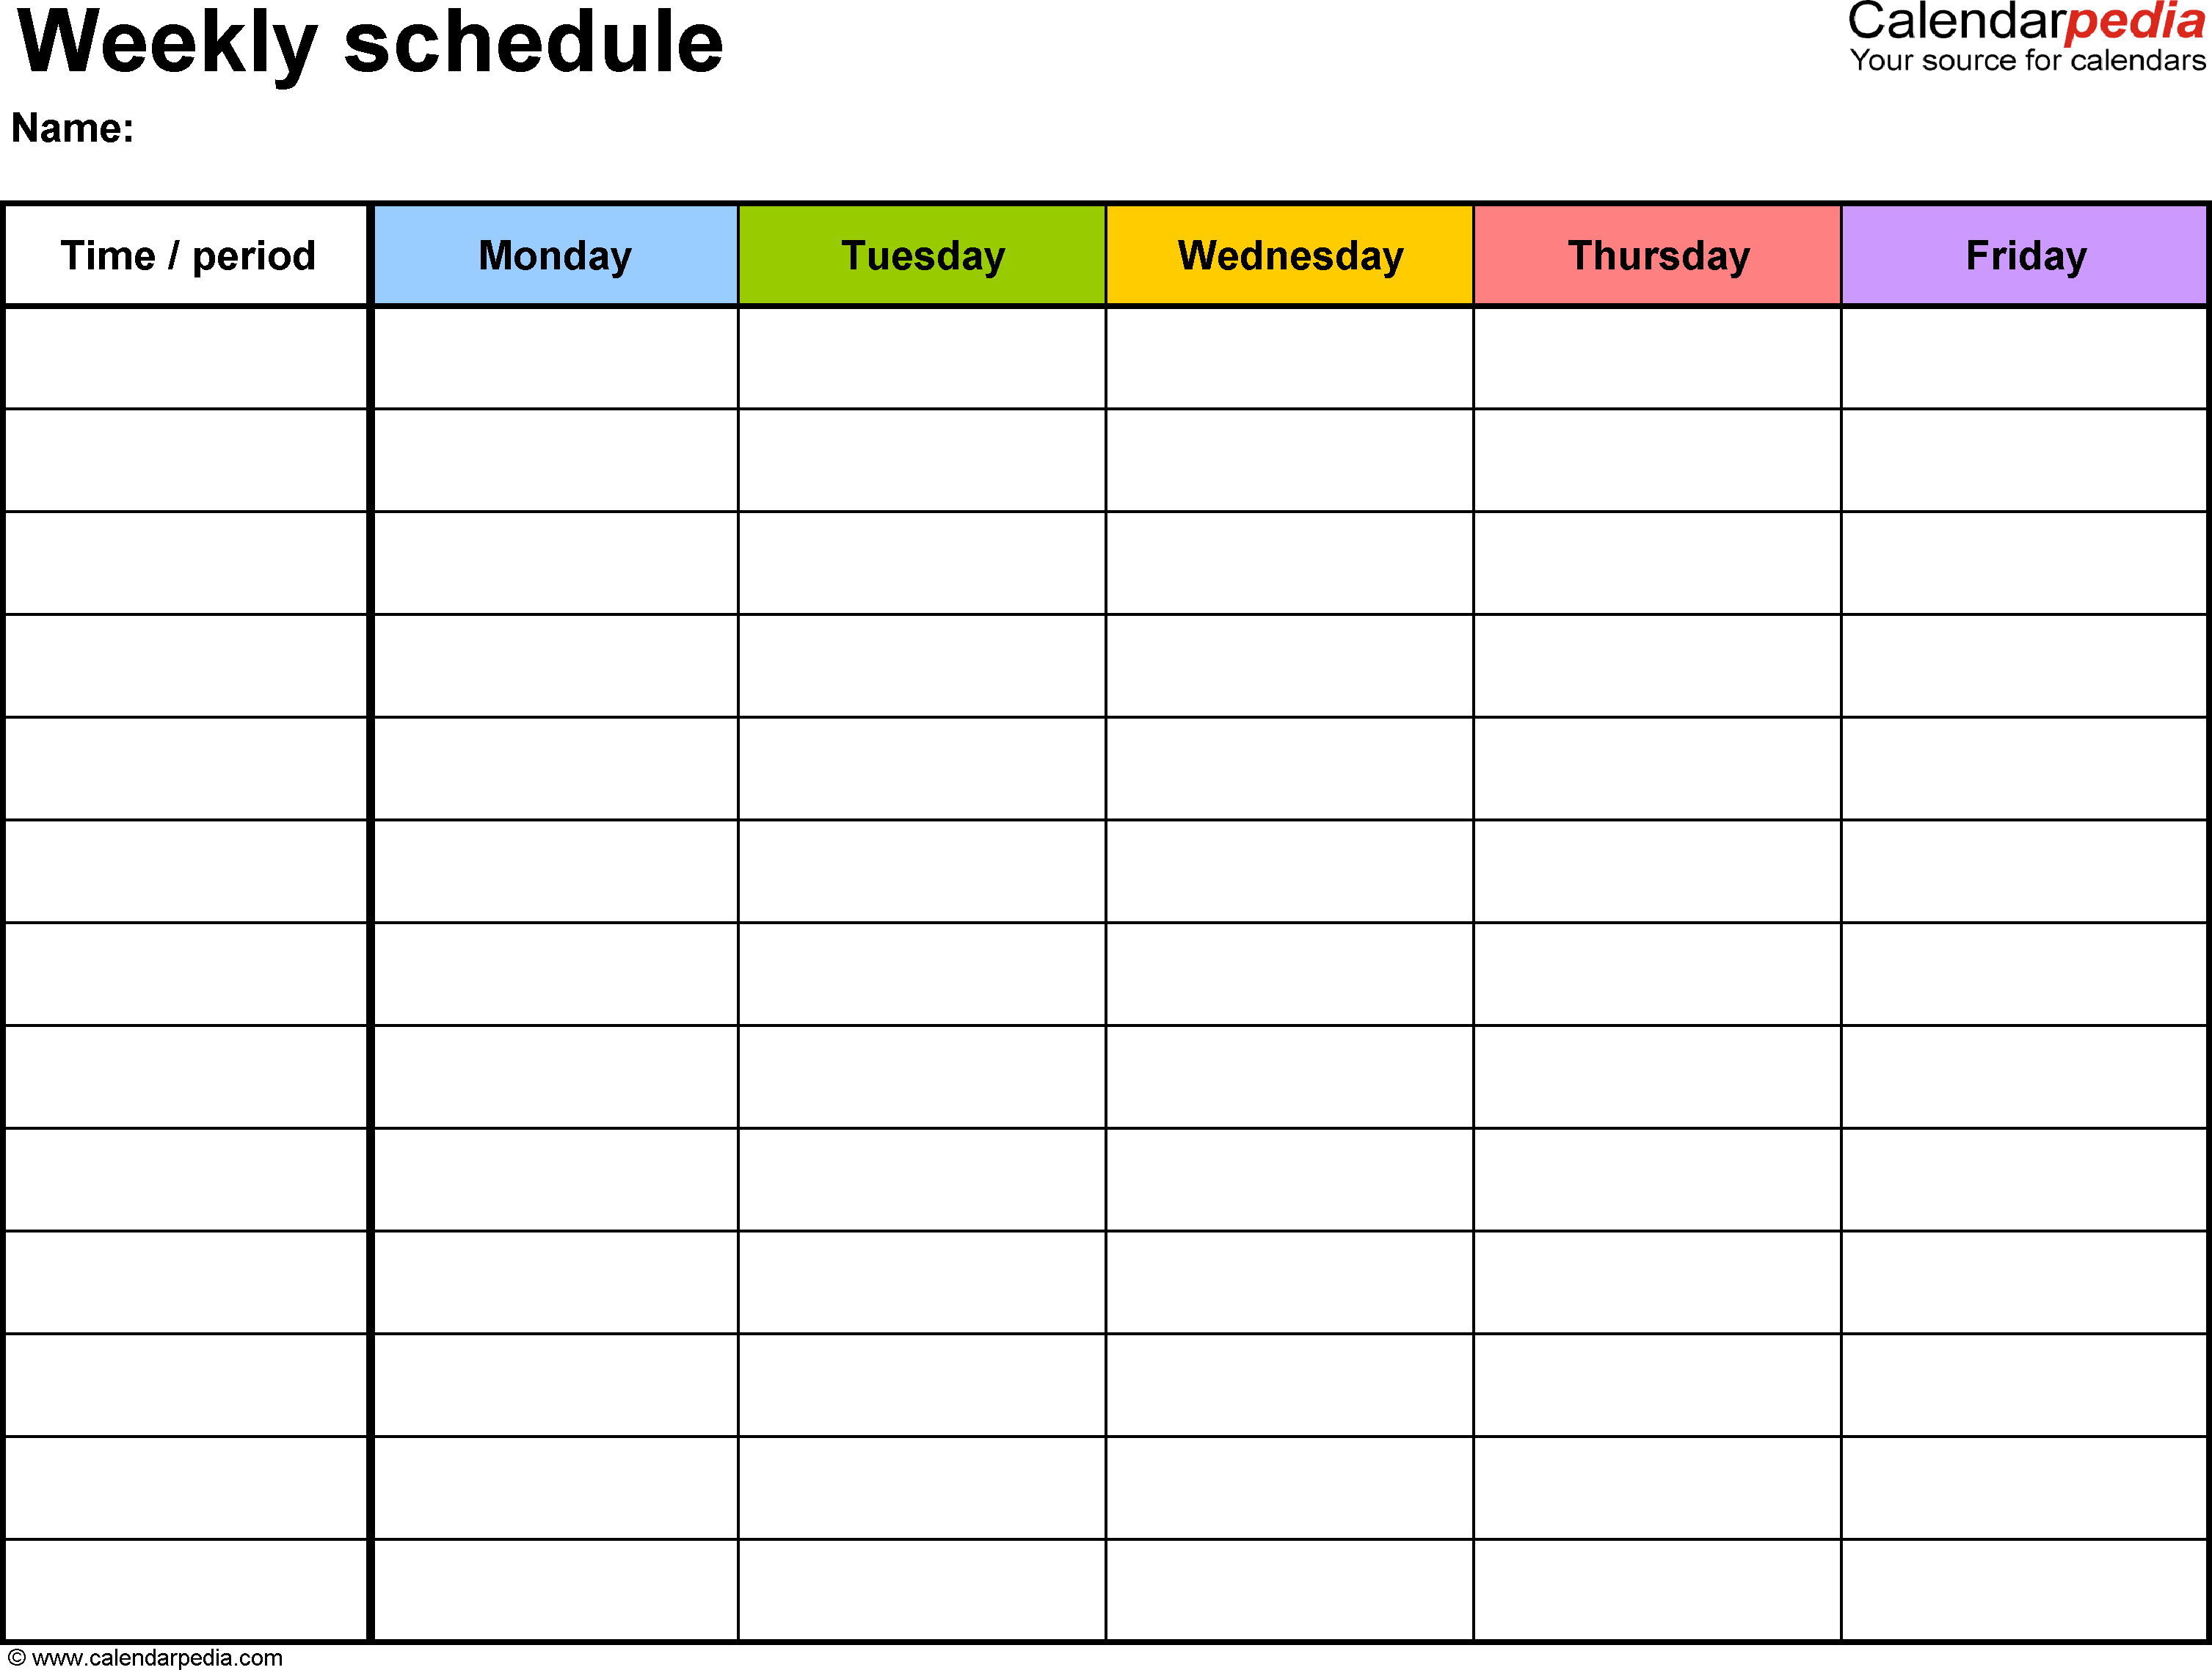 Weekly Schedule Template For Word Version 1: Landscape, 1 inside Calendar Template Monday Through Friday